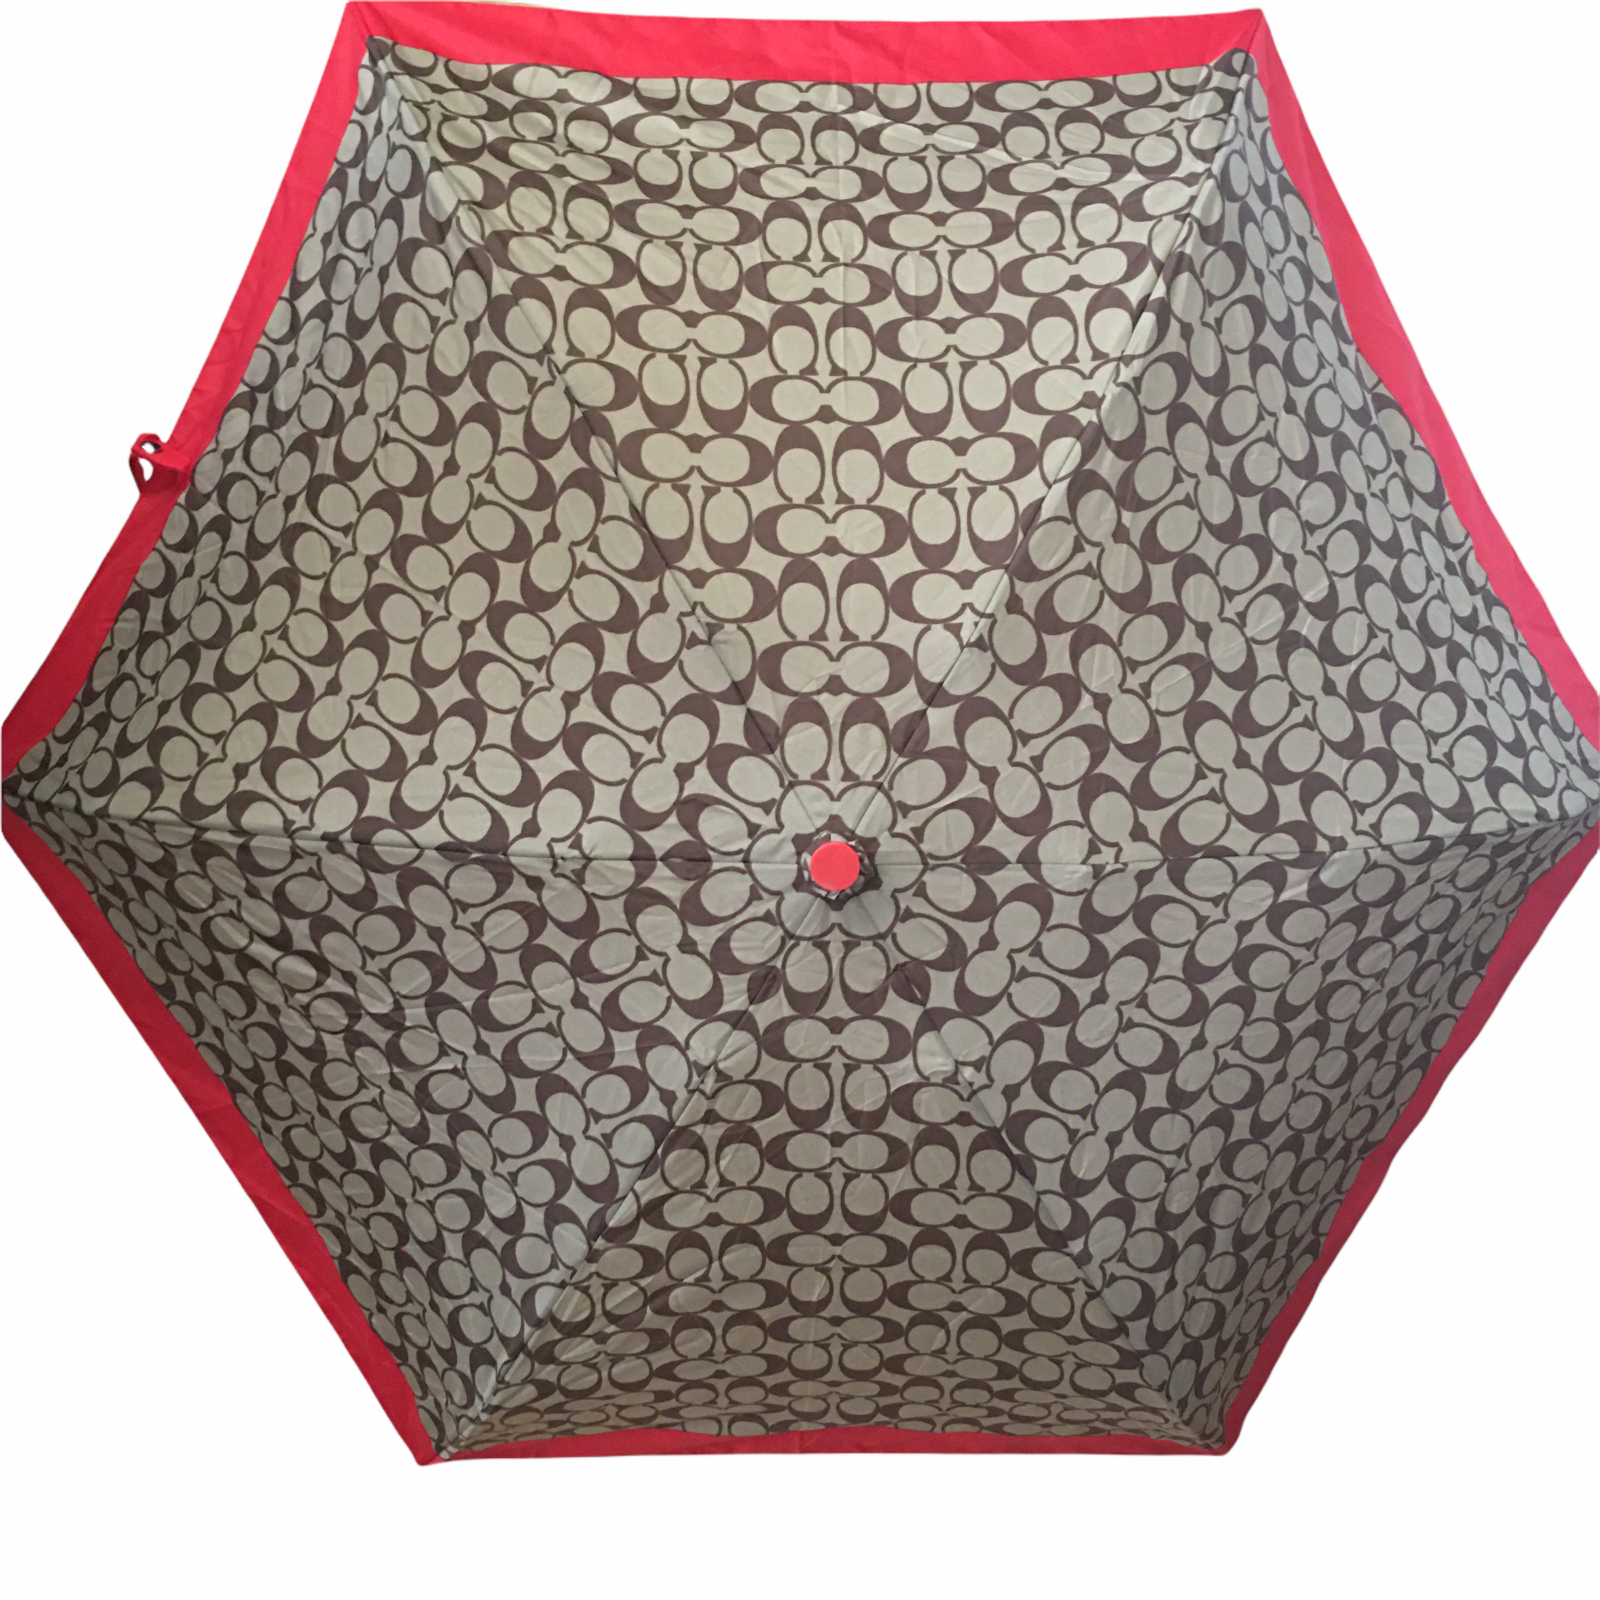 Authentic Coach Signature Red & Tan Compact Retractable Umbrella New WO Tags